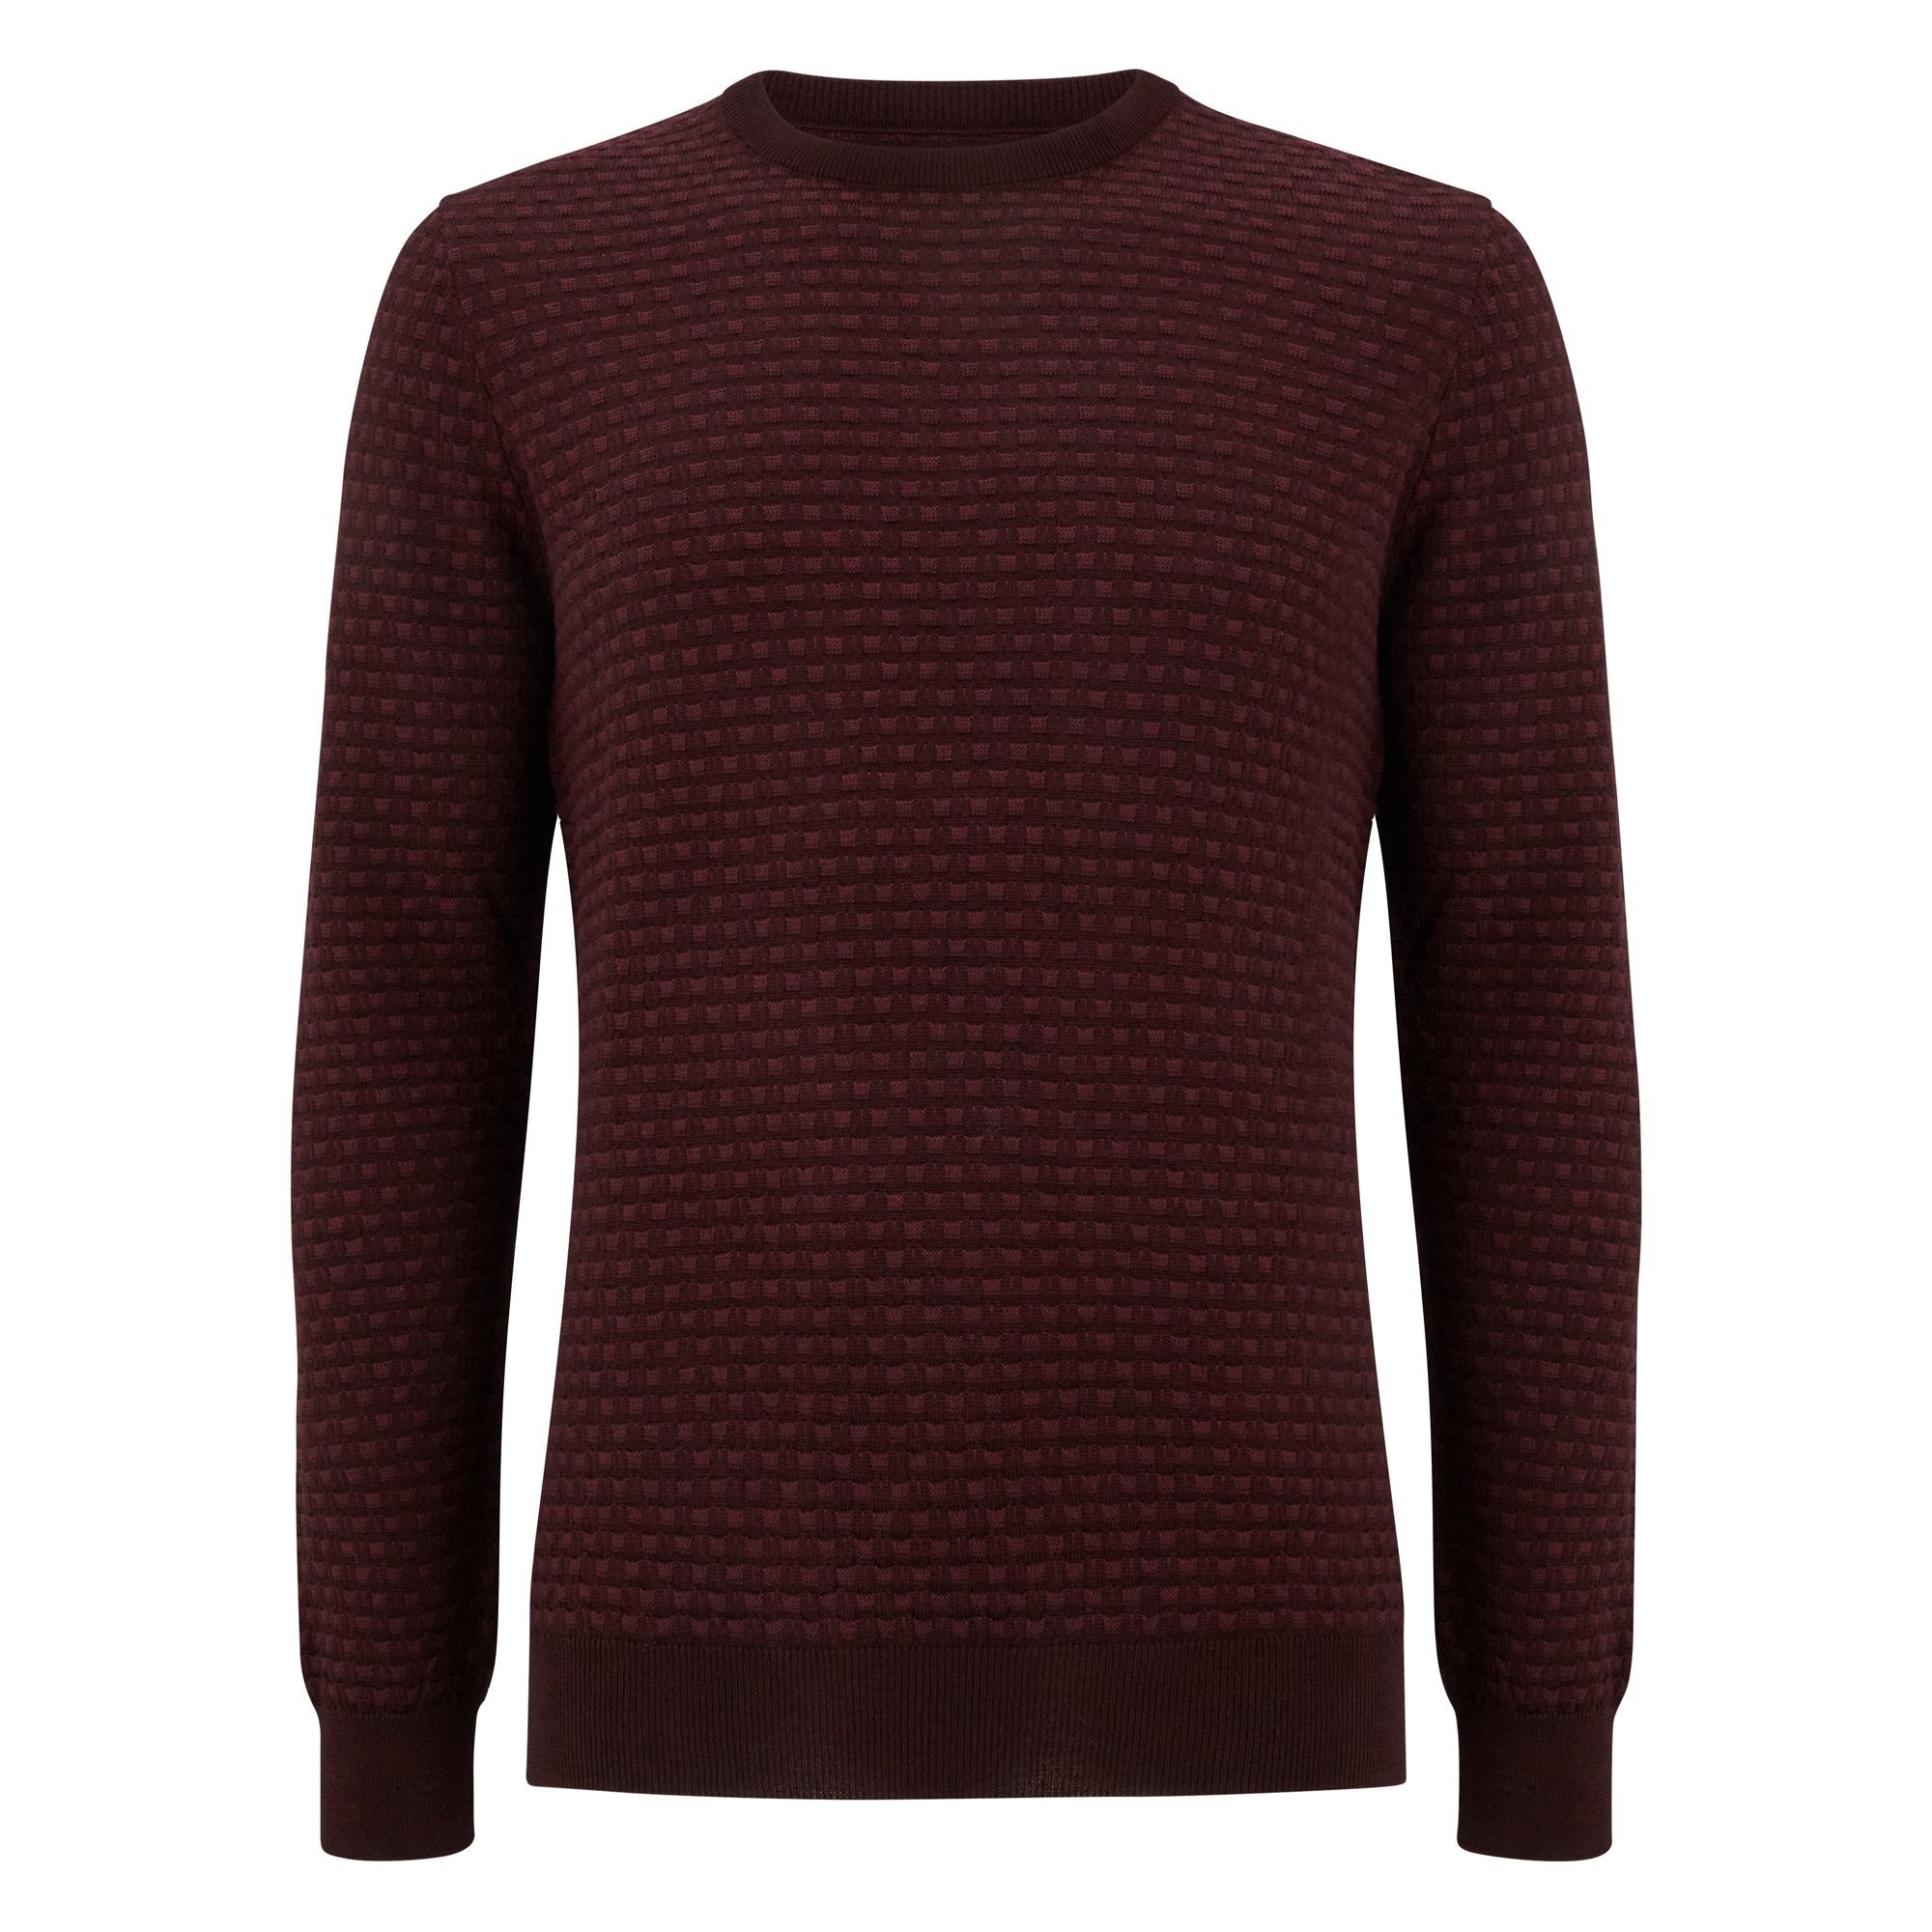 Burgundy Crew Neck Sweater